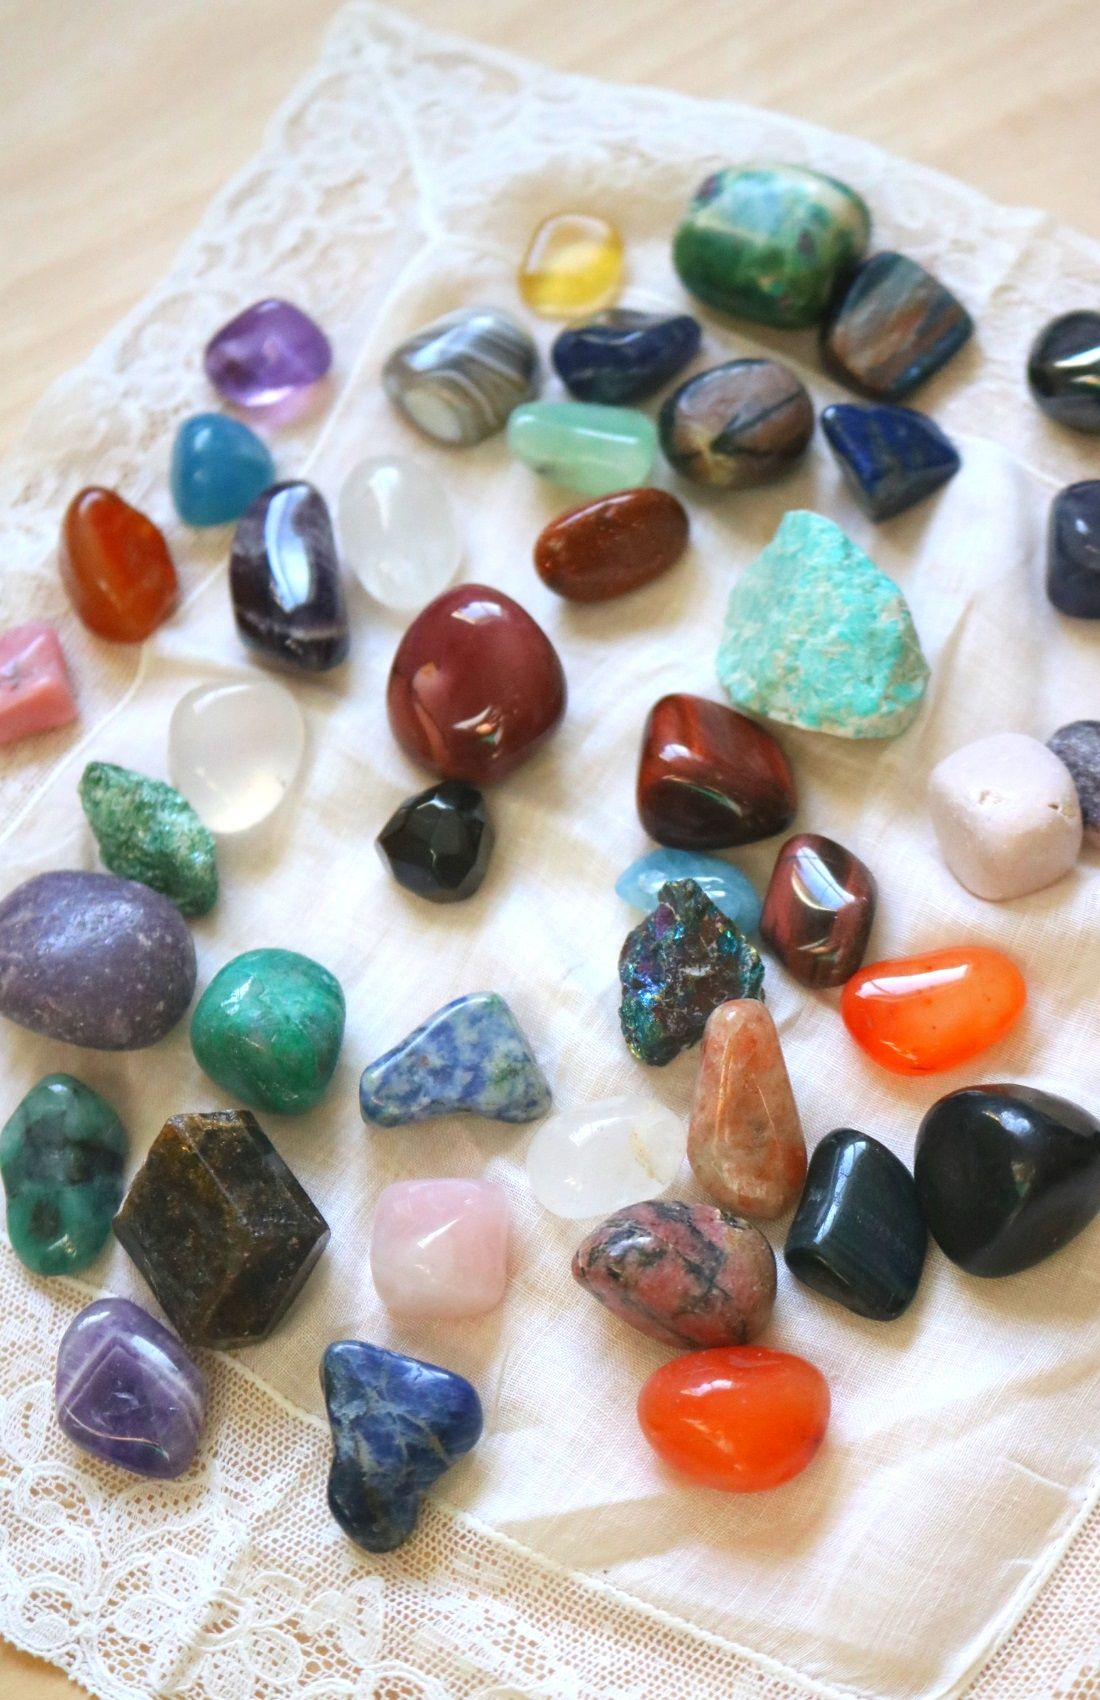 Cleansing crystals with the moon spiritually inspired